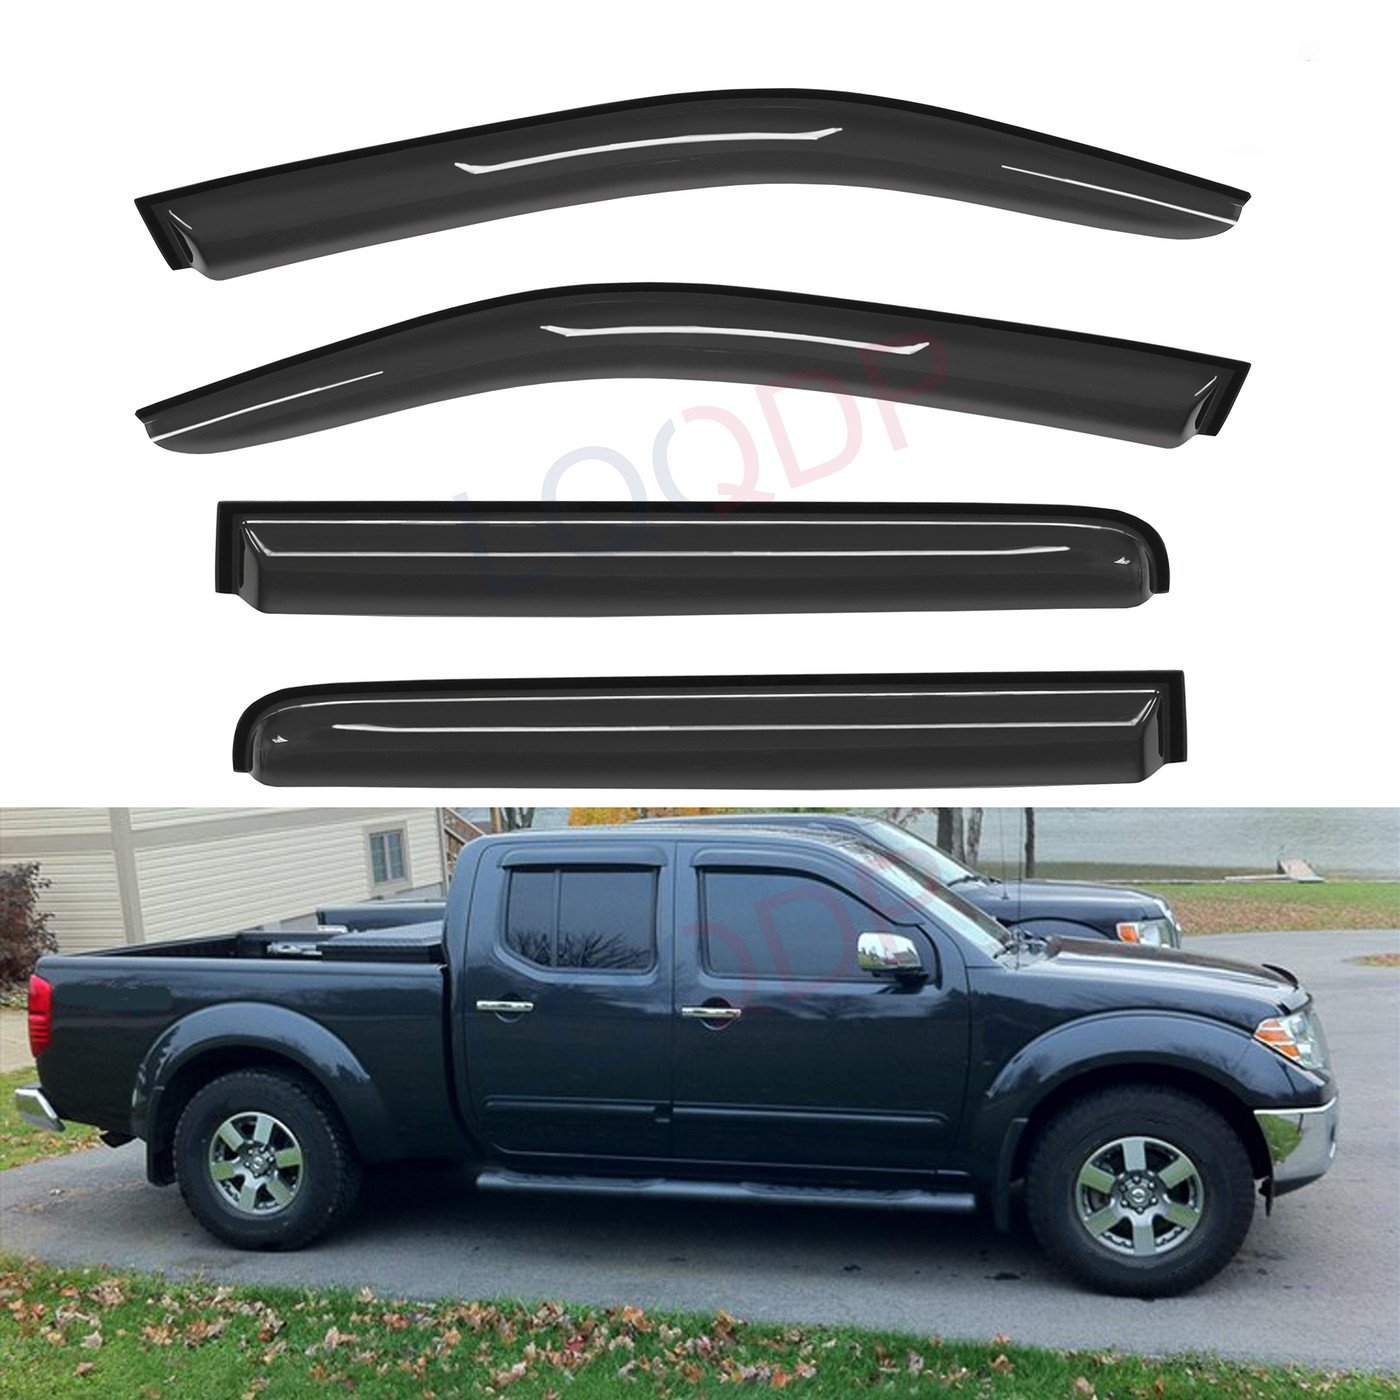 LQQDP 4pcs Front+Rear Smoke Sun//Rain Guard Outside Mount Tape-On Window Visors Fit 05-18 Nissan Frontier Crew Cab With 4 Full Size Doors